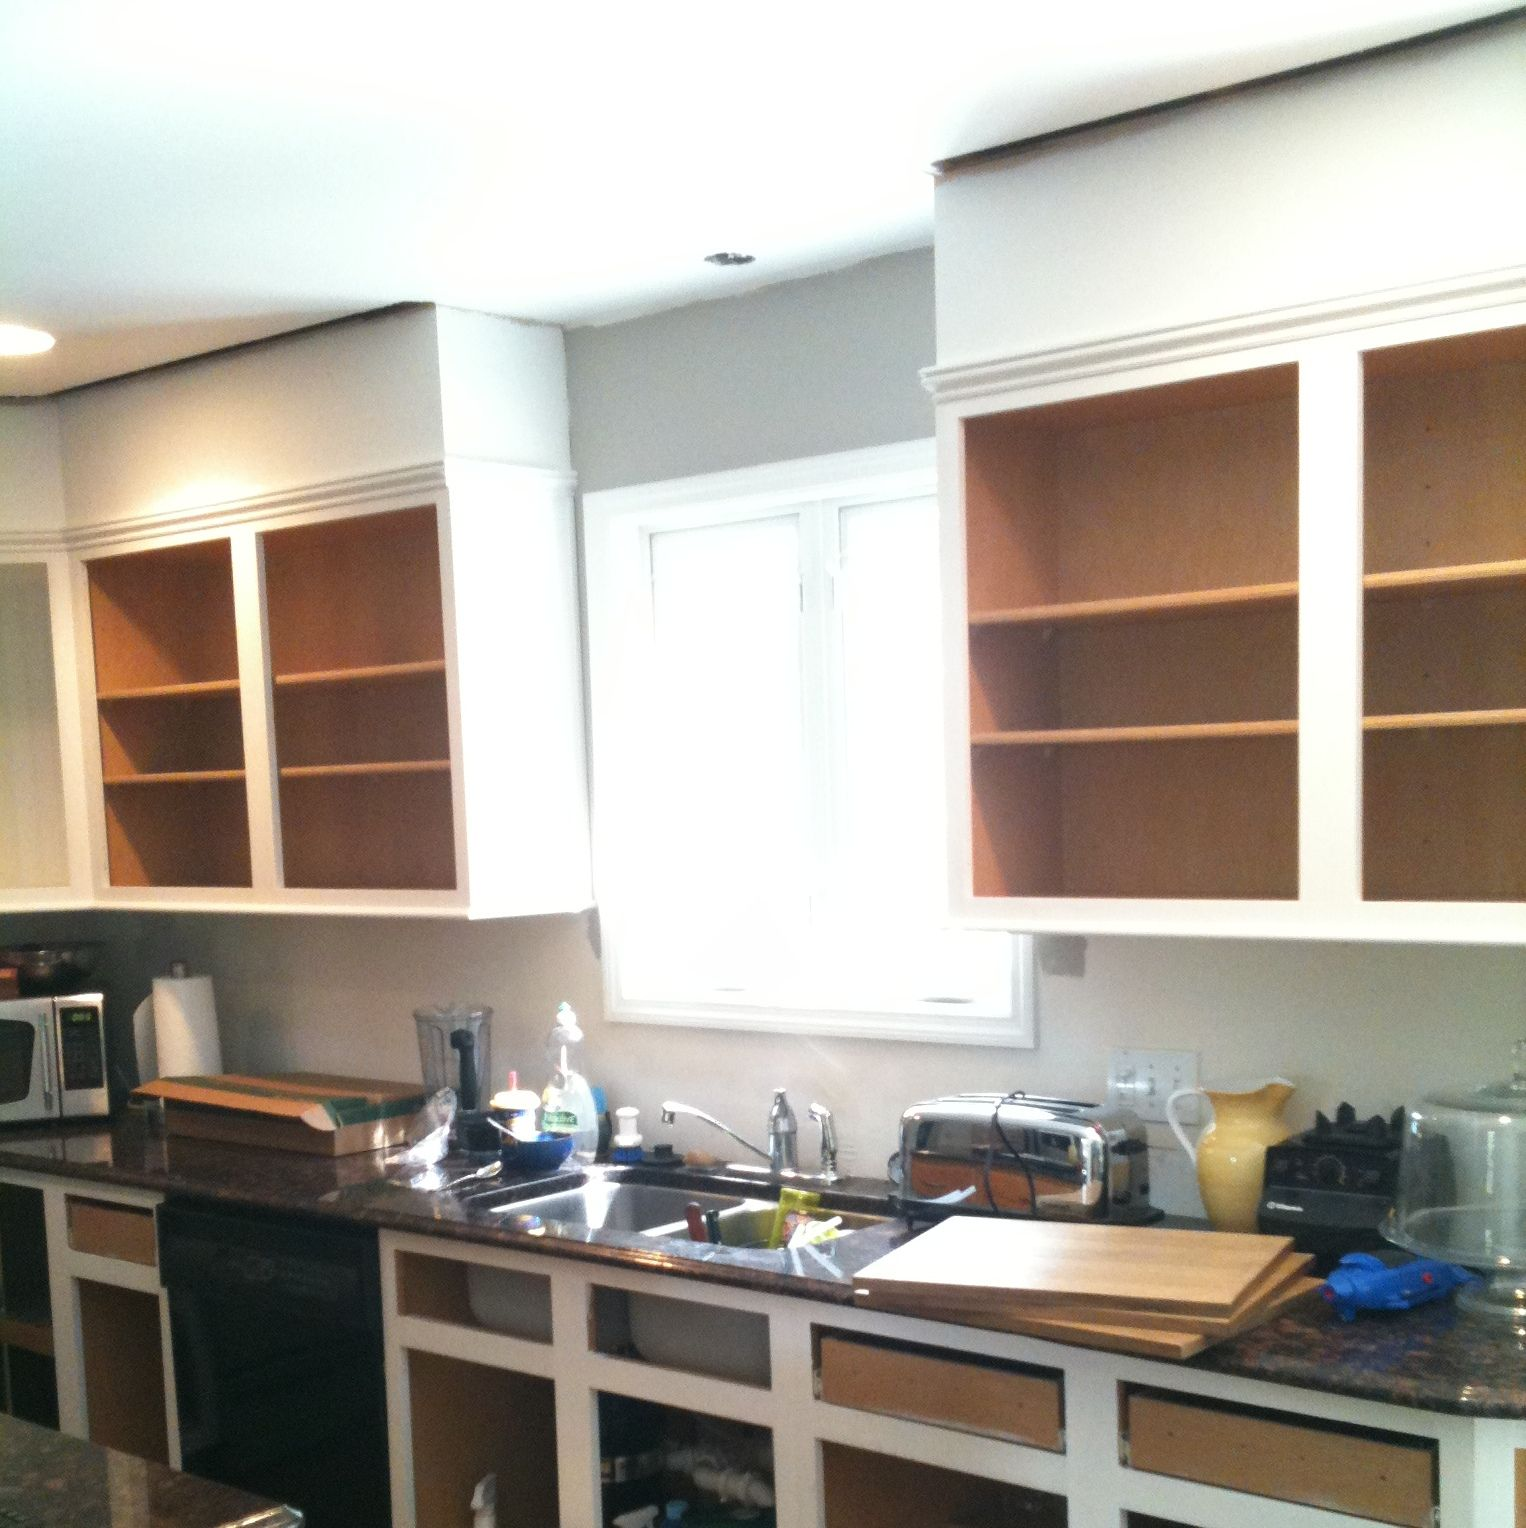 Progress pictures of a Kitchen Remodel featured